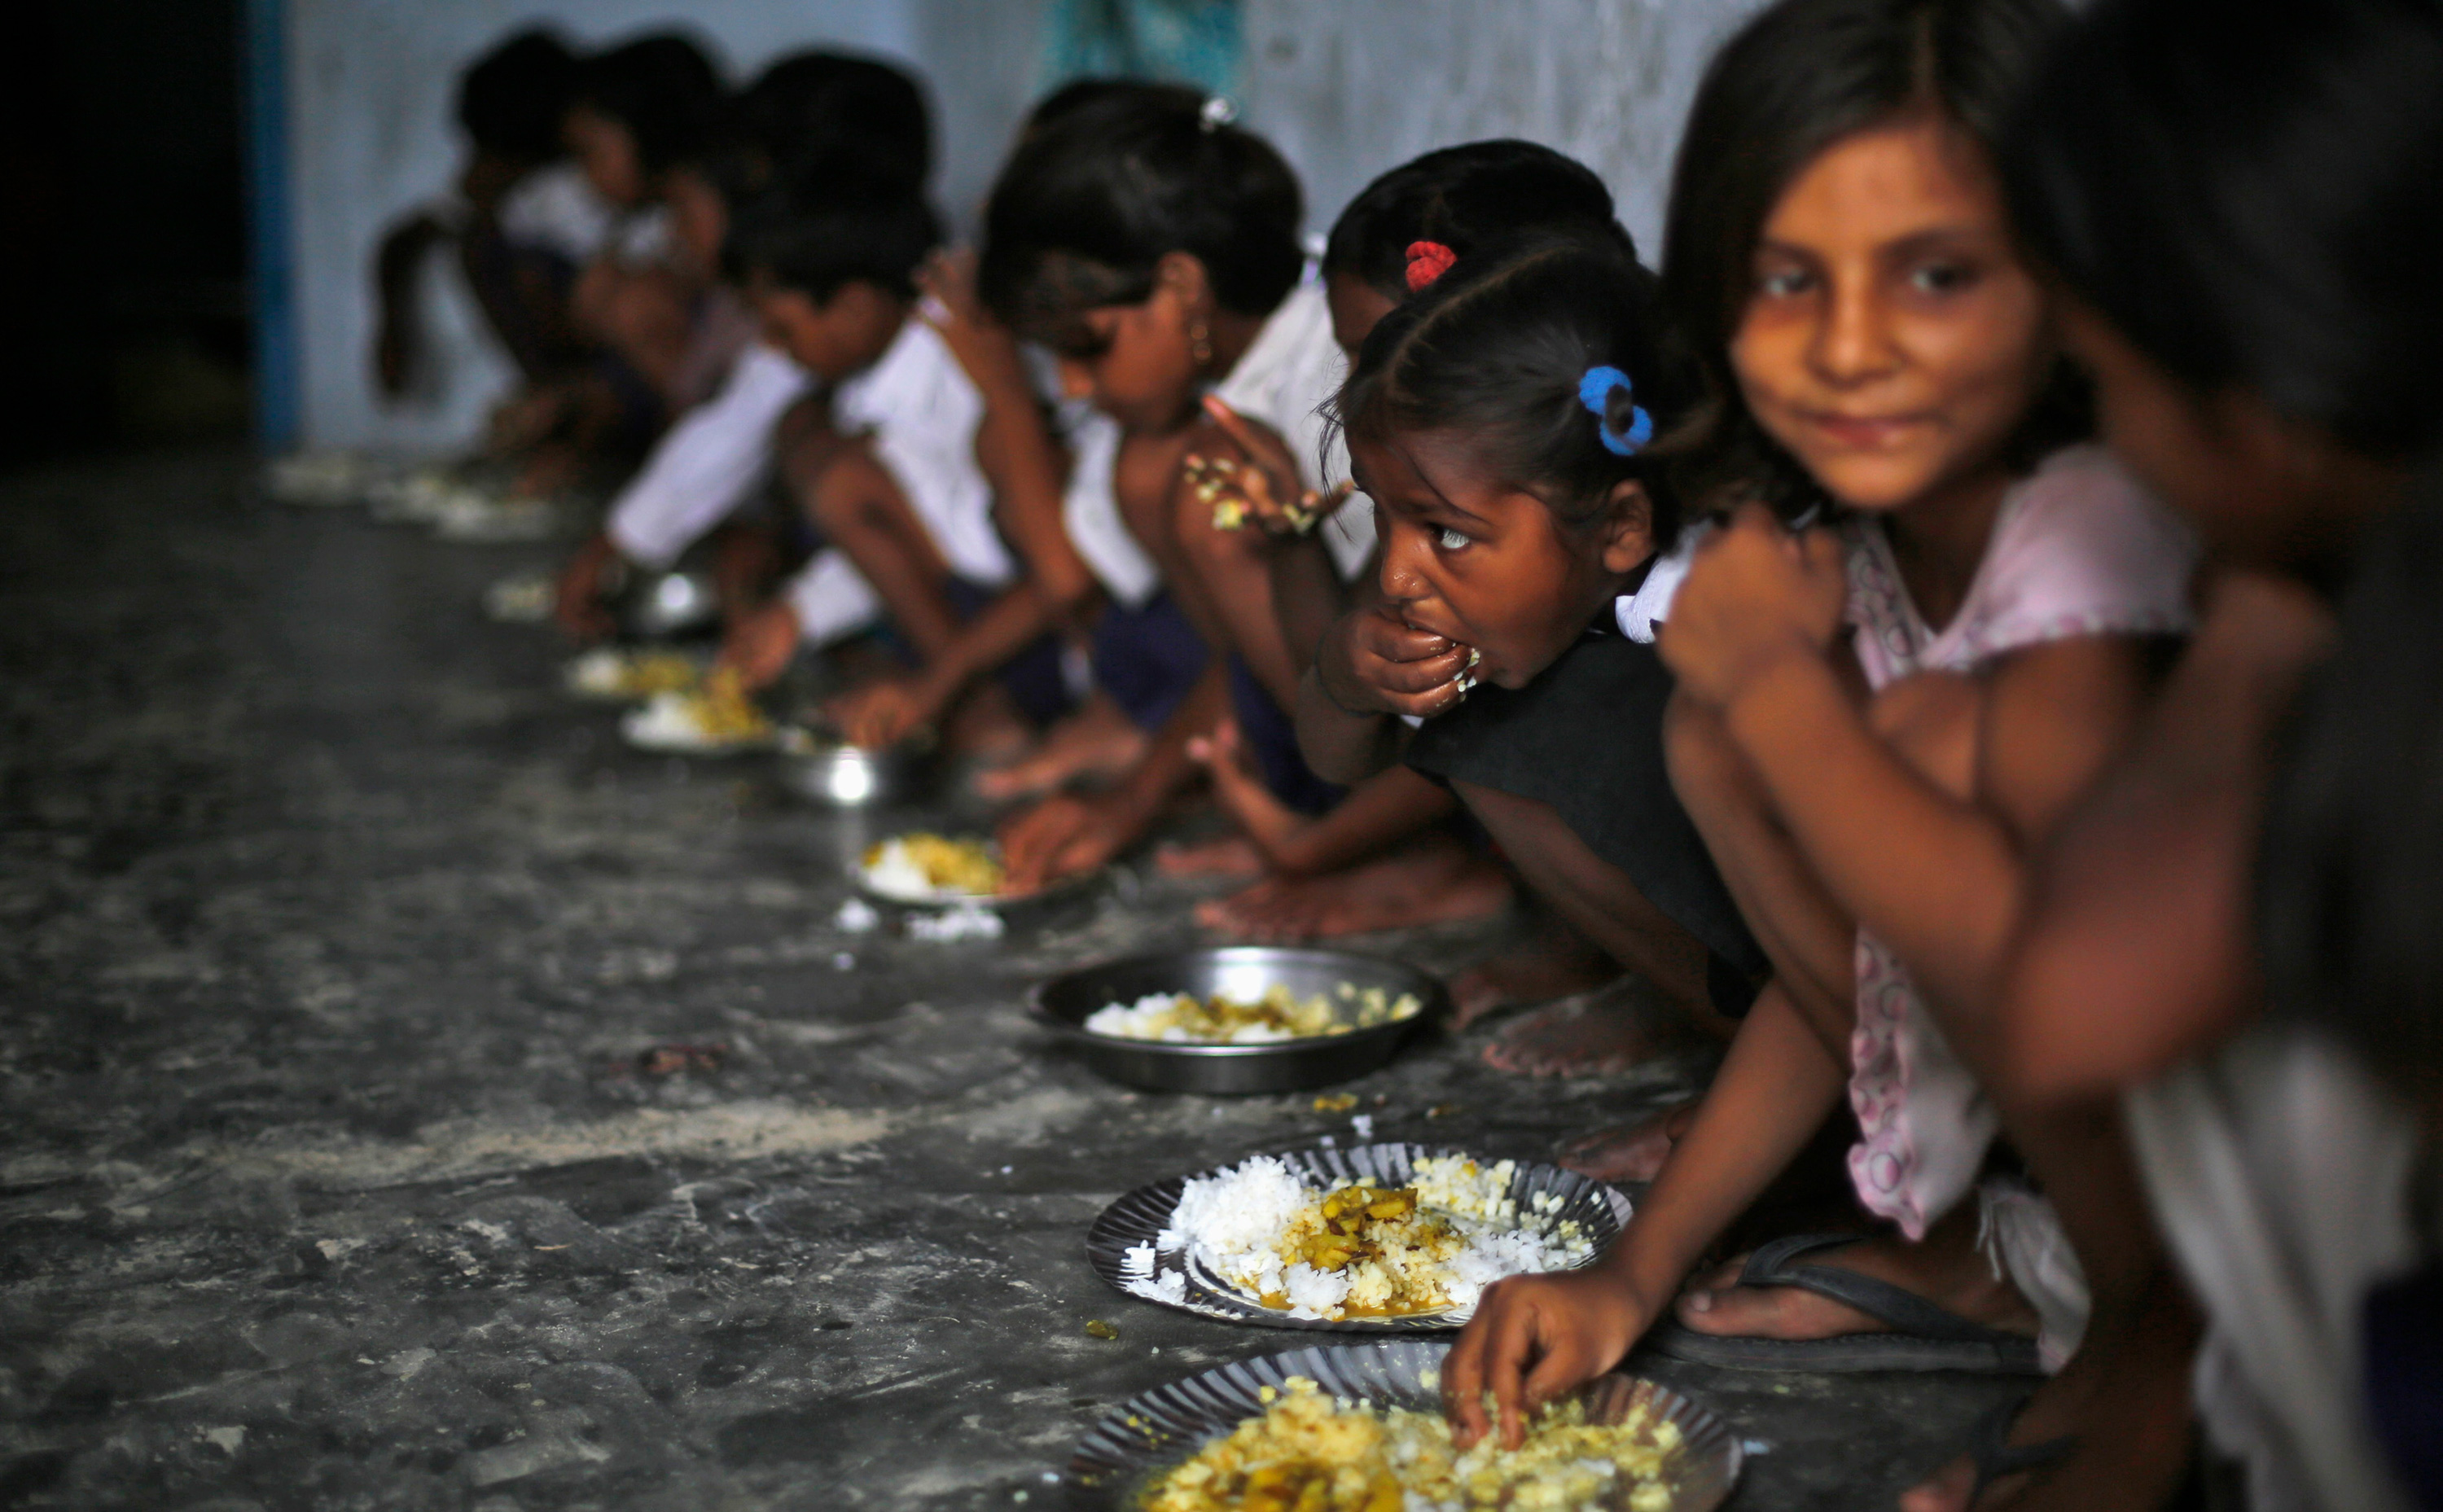 The photo shows a class of young children lined up against a wall, seated, and eating plates of rice and curry with their hands.